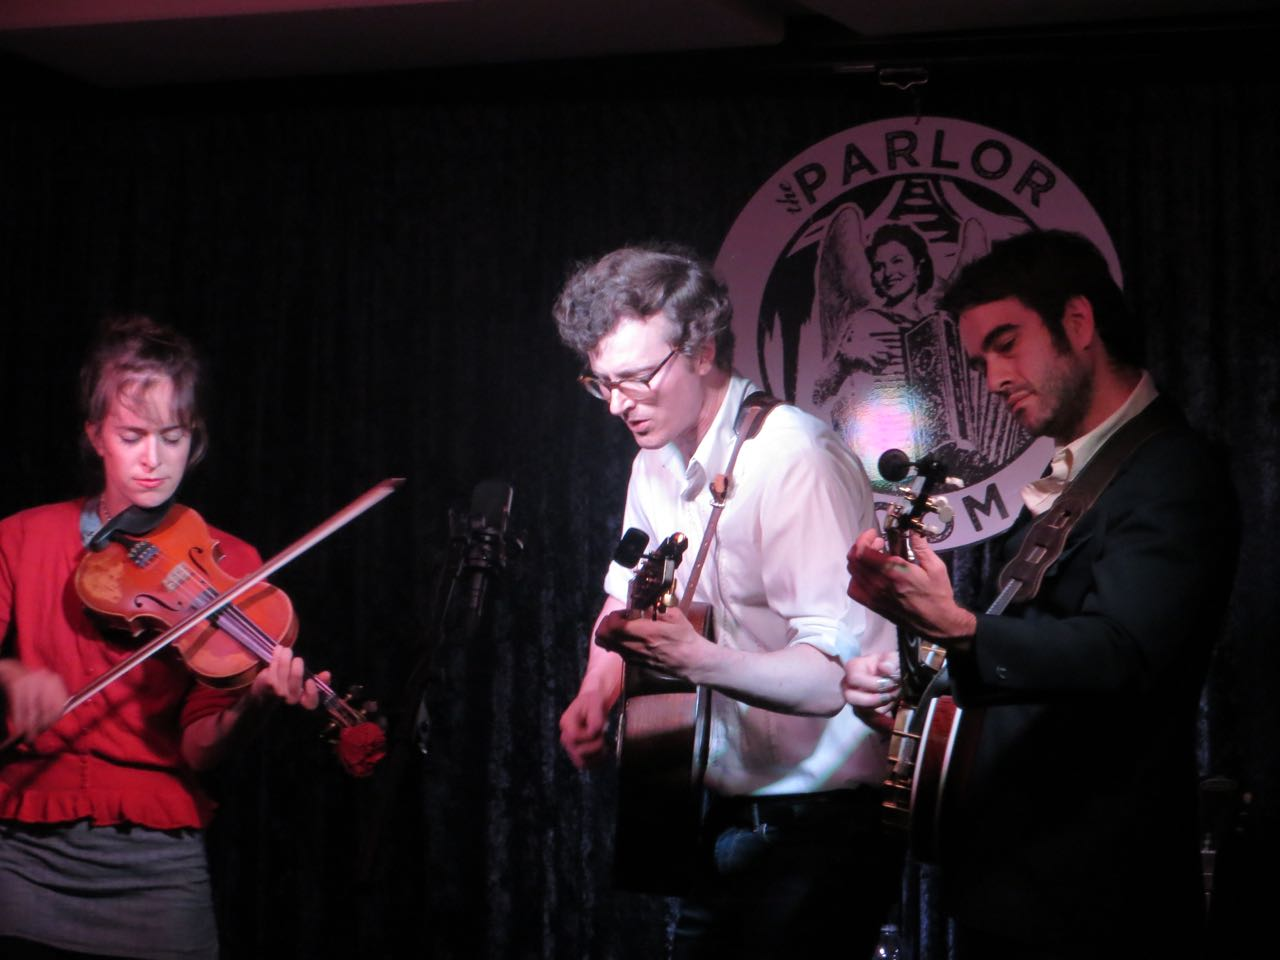 Michael Daves singing/guitar, Brittany Haas -violin, Noam Pikelny -banjo on stage; Parlor Room logo in background